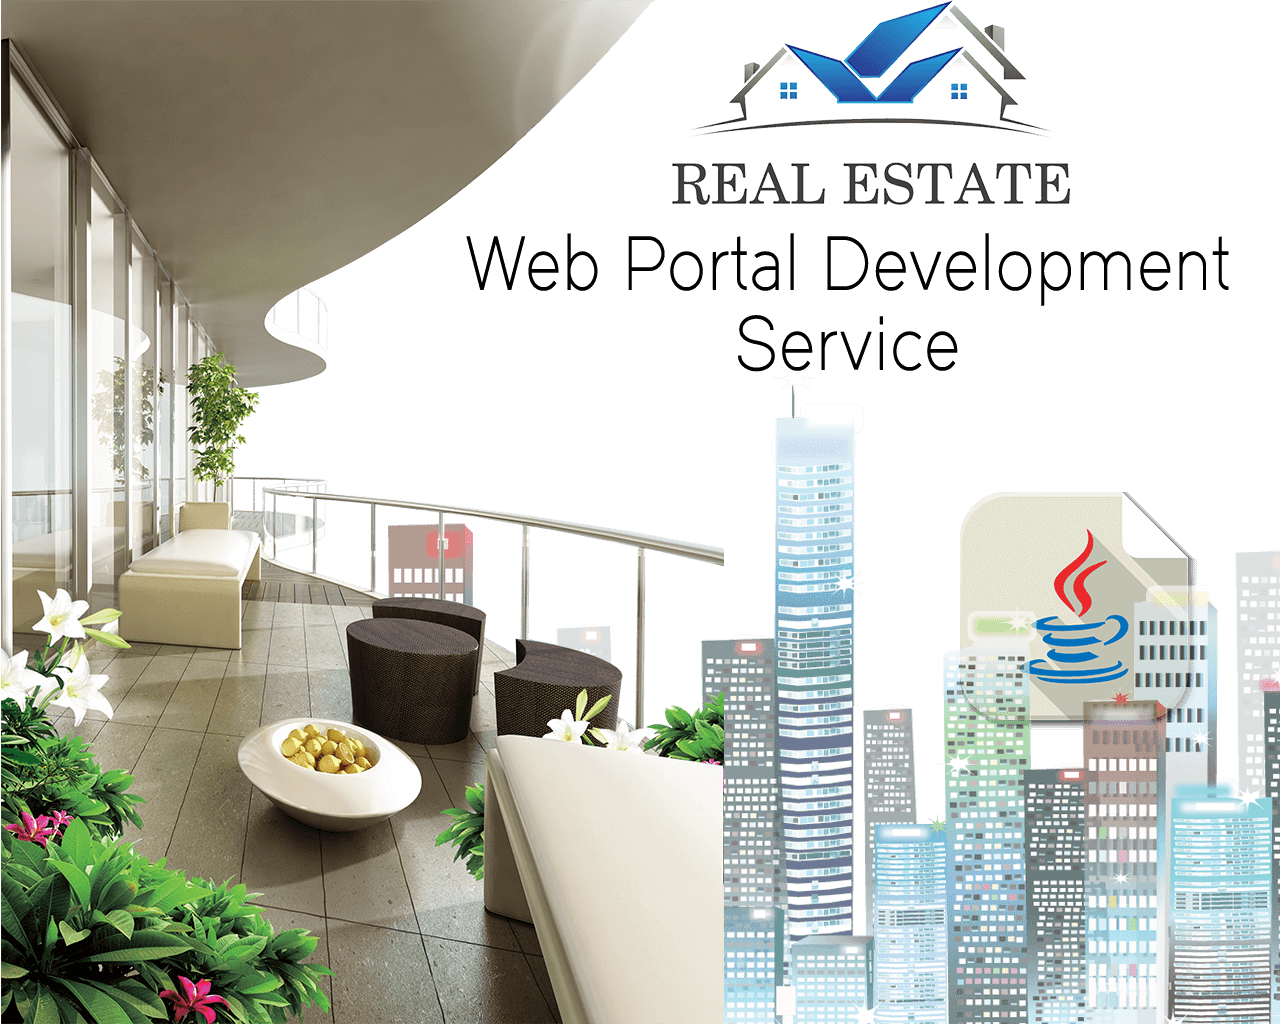 Real Estate Web Portal Development Services IT Company